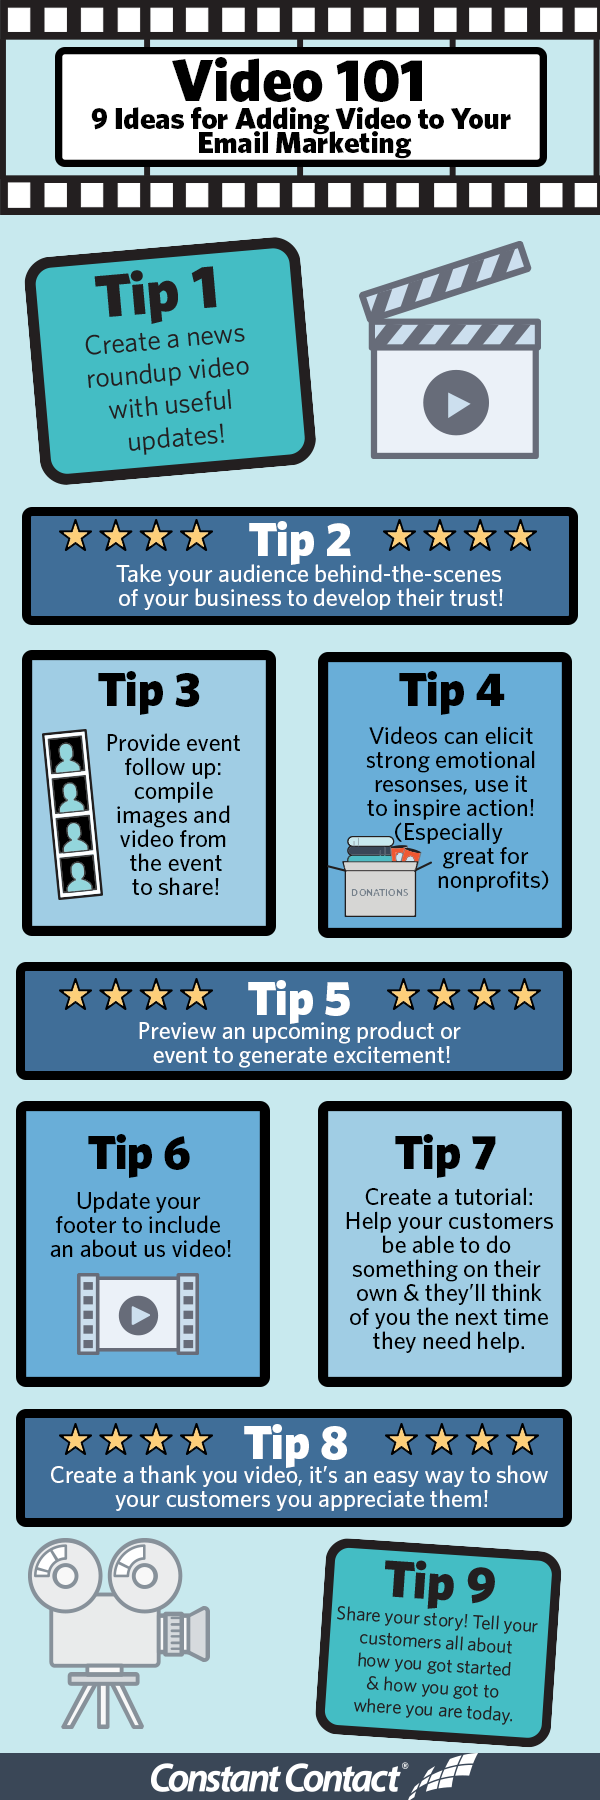 add video to your marketing infographic